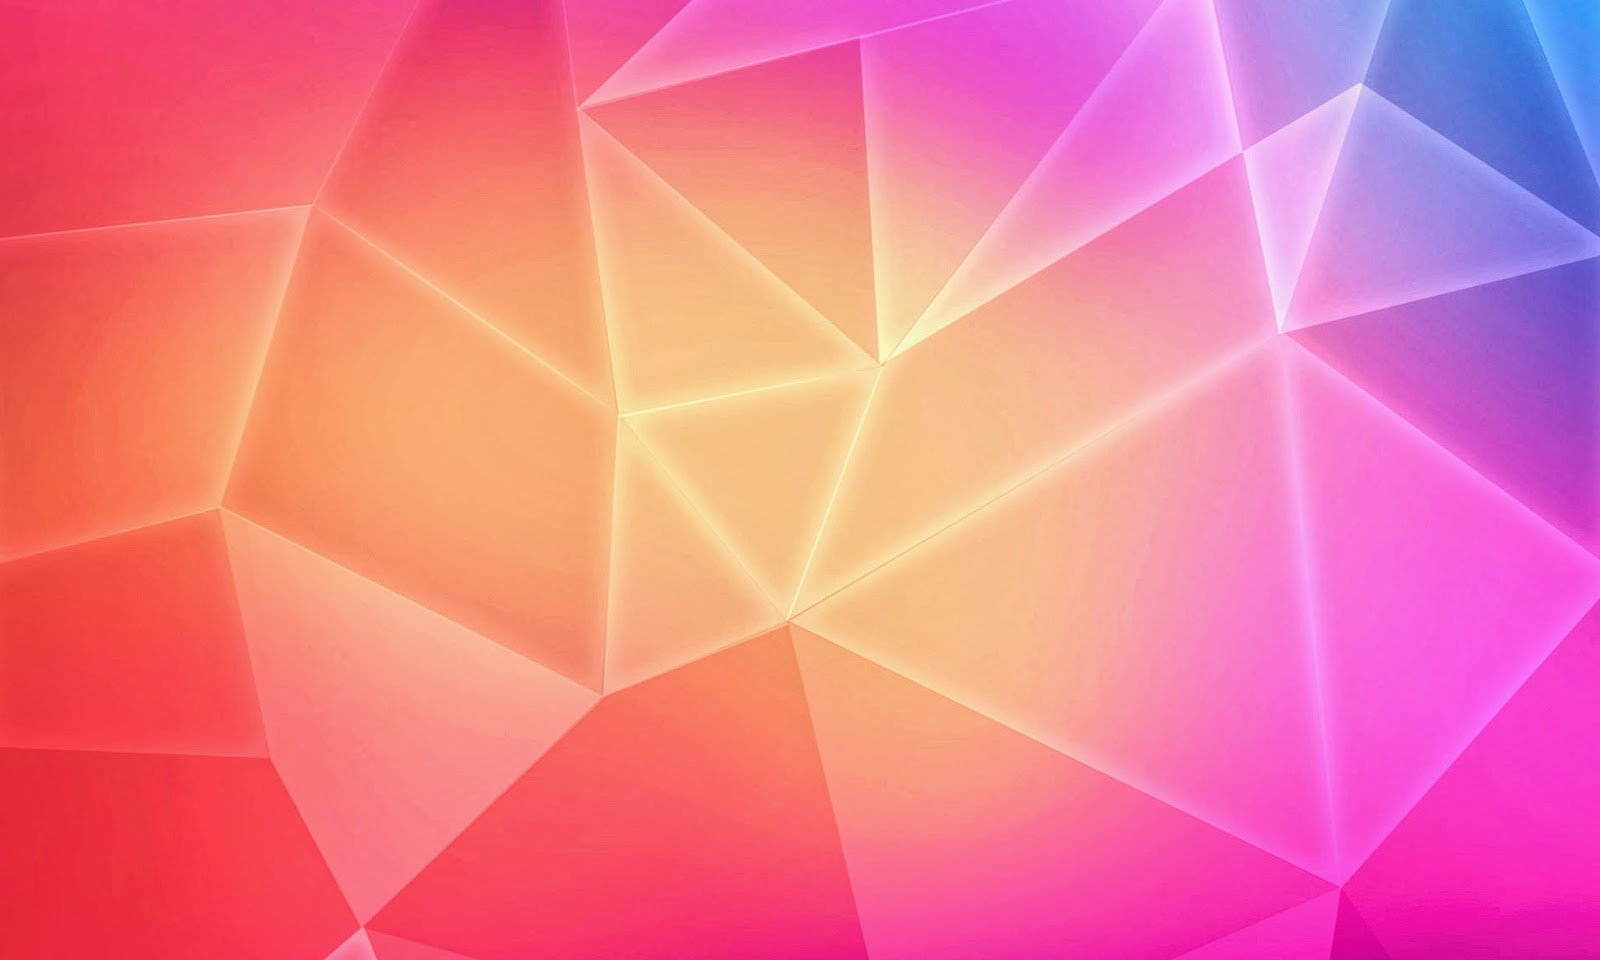 triangle abstract wallpapers - photo #12